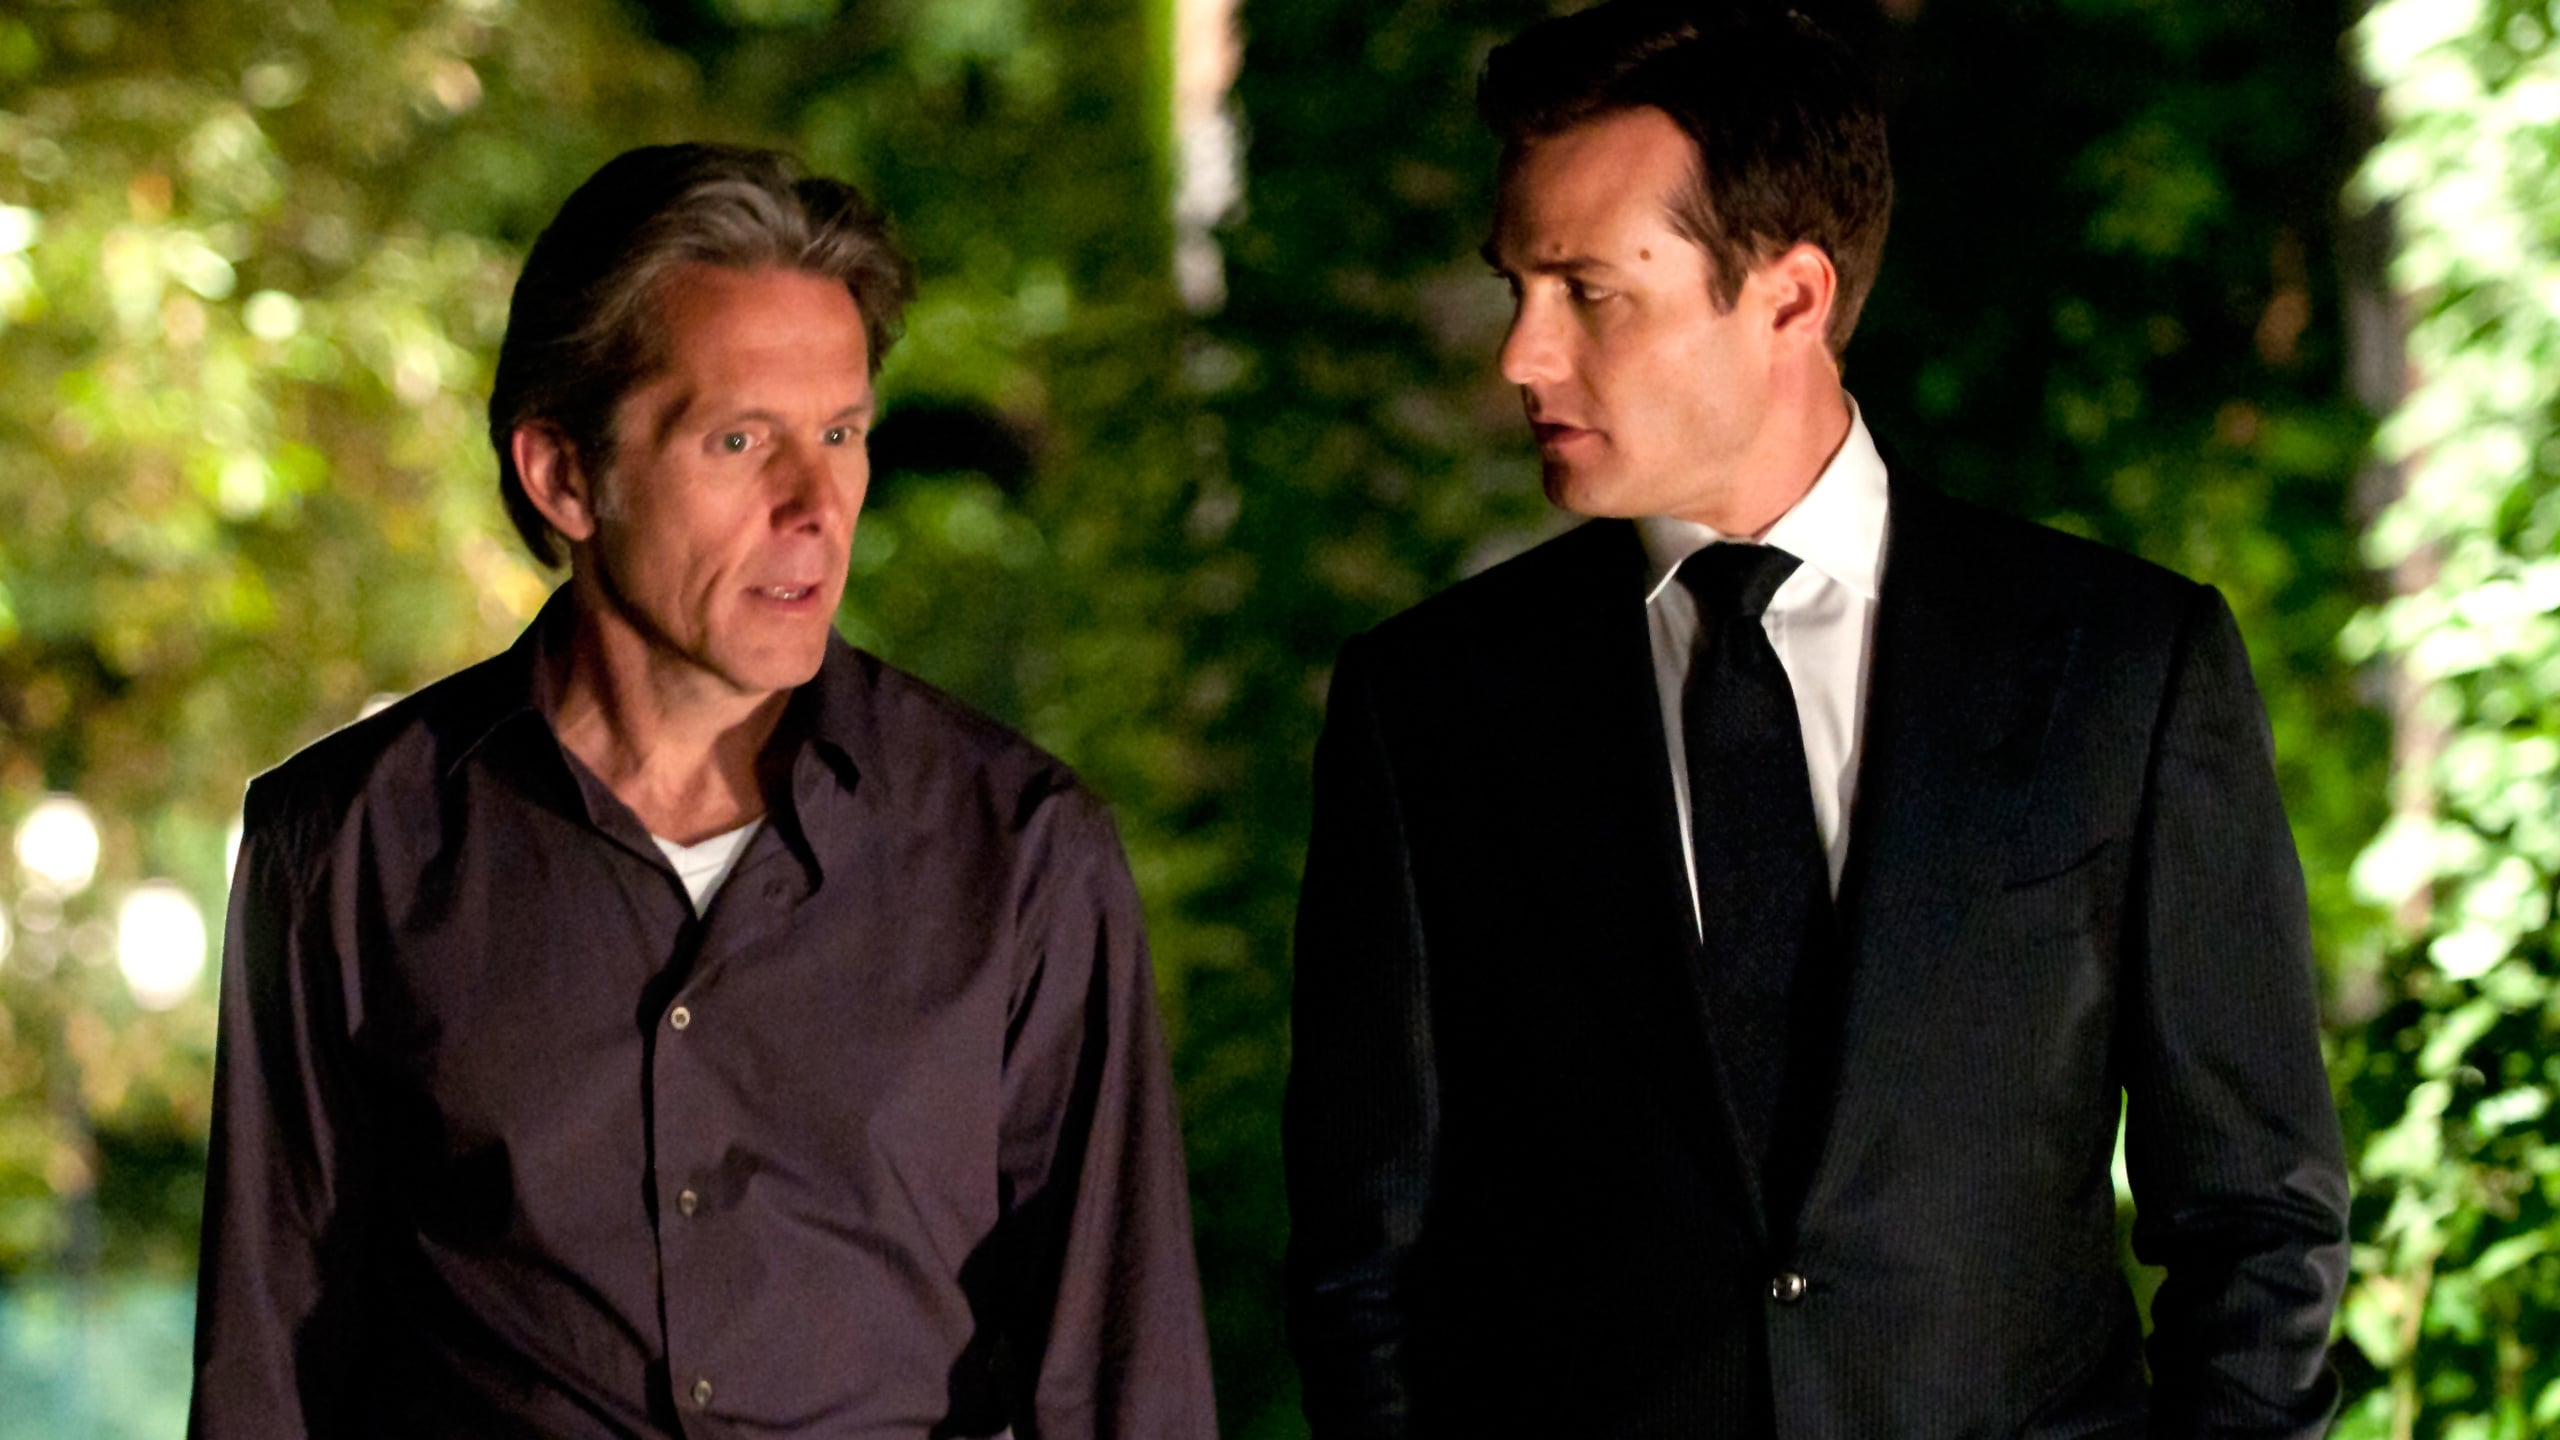 Suits - Season 1 Episode 11 : Rules of the Game